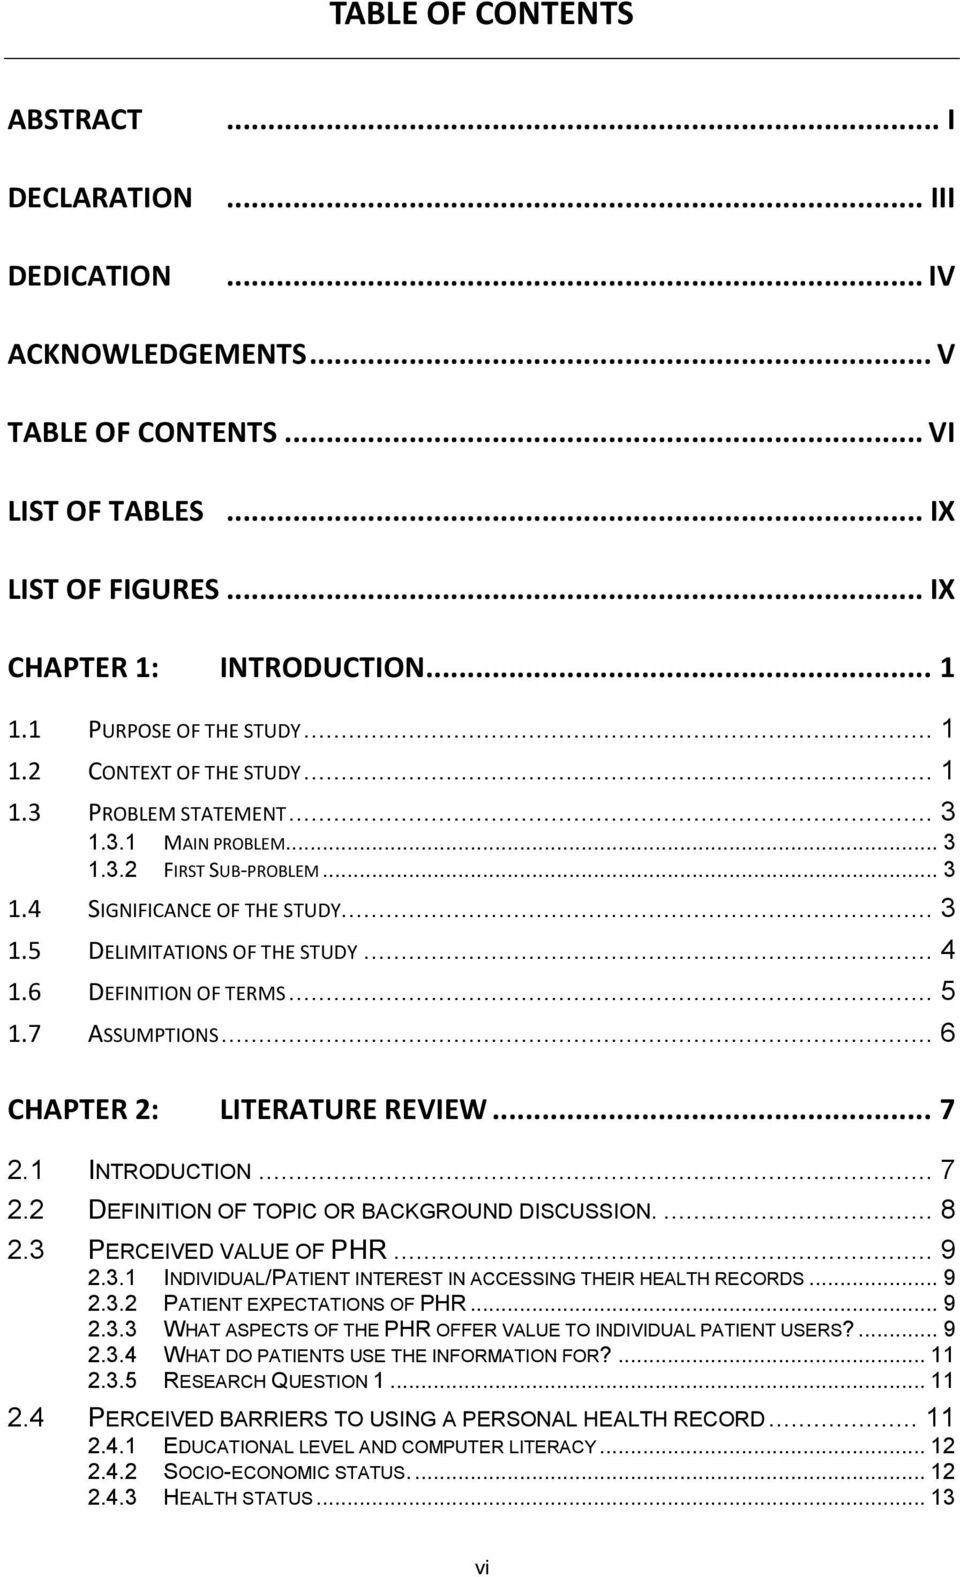 .. 4 DEFINITION OF TERMS... 5 ASSUMPTIONS... 6 CHAPTER 2: LITERATURE REVIEW... 7 2.1 2.2 2.3 2.4 INTRODUCTION... 7 DEFINITION OF TOPIC OR BACKGROUND DISCUSSION.... 8 PERCEIVED VALUE OF PHR... 9 2.3.1 2.3.2 2.3.3 2.3.4 2.